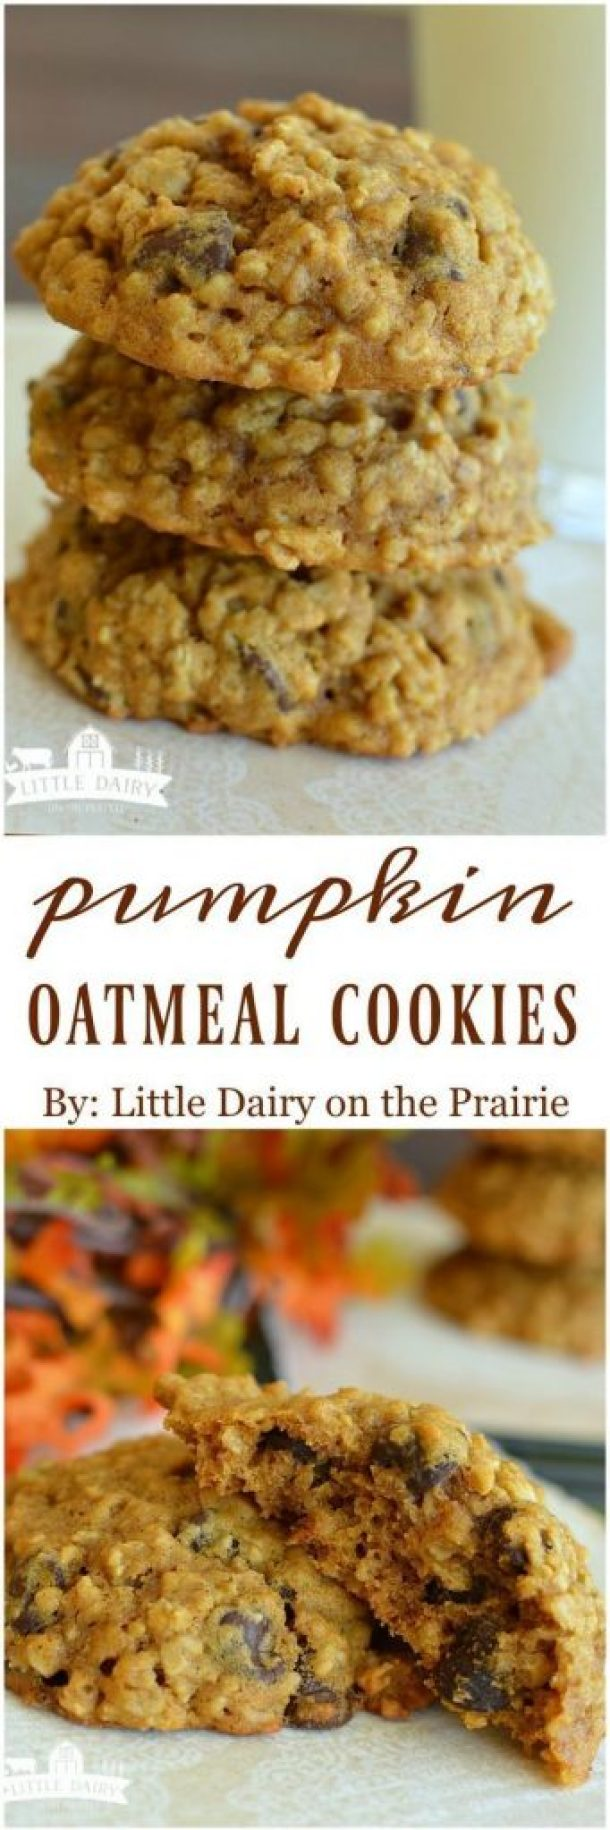 Pumpkin Oatmeal Cookies Recipe | Little Dairy On the Prairie